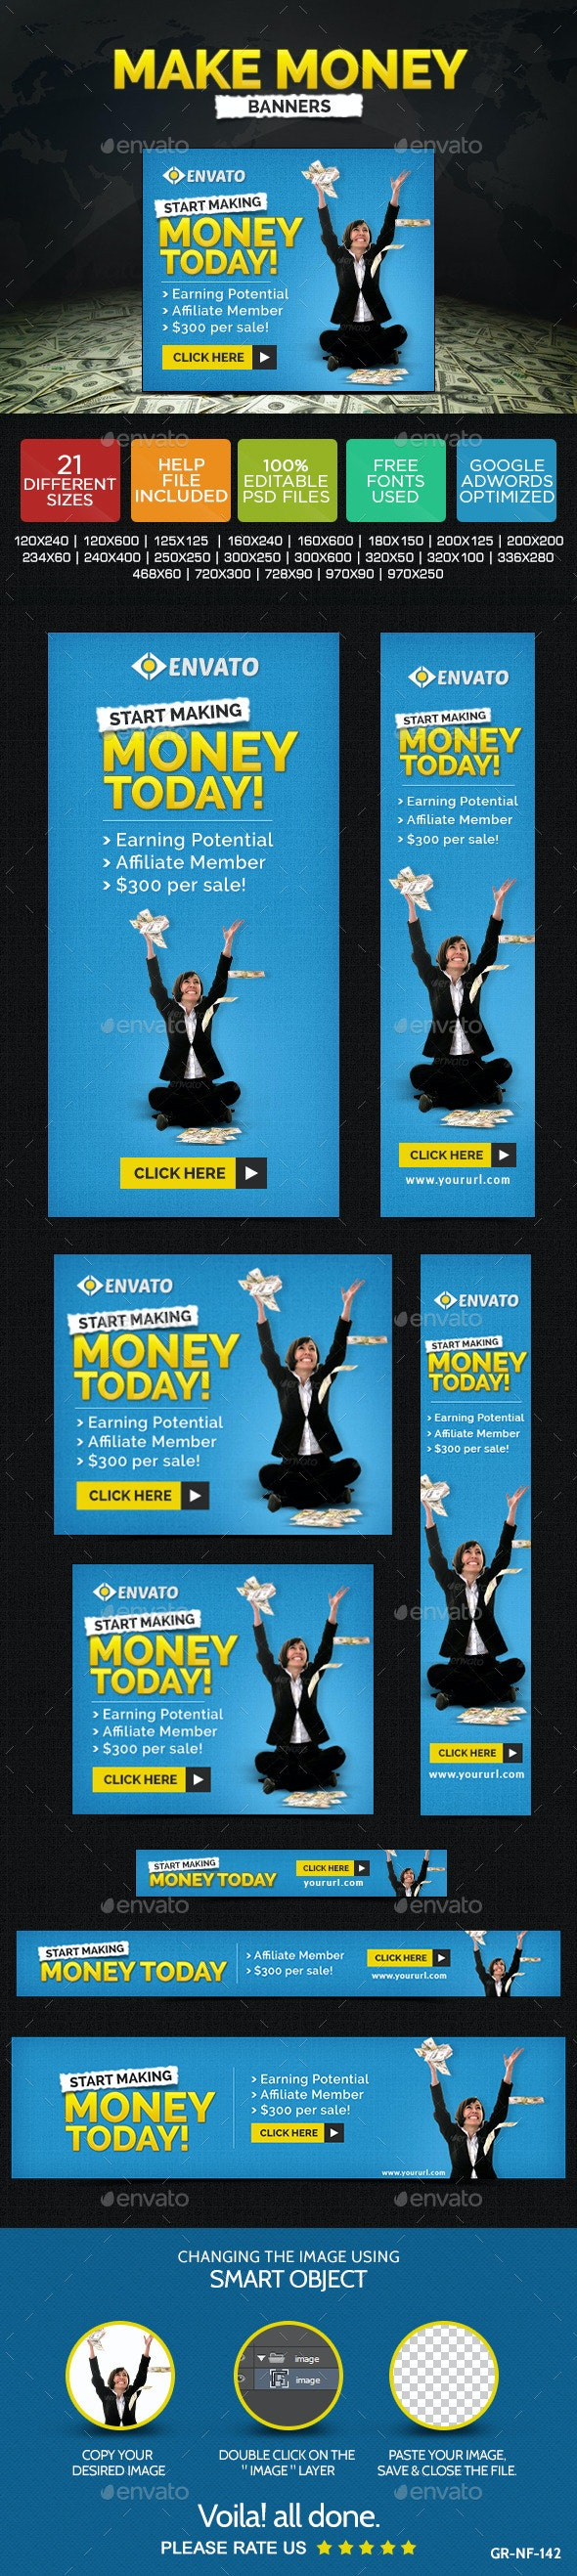 Make Money Banners - Banners & Ads Web Elements